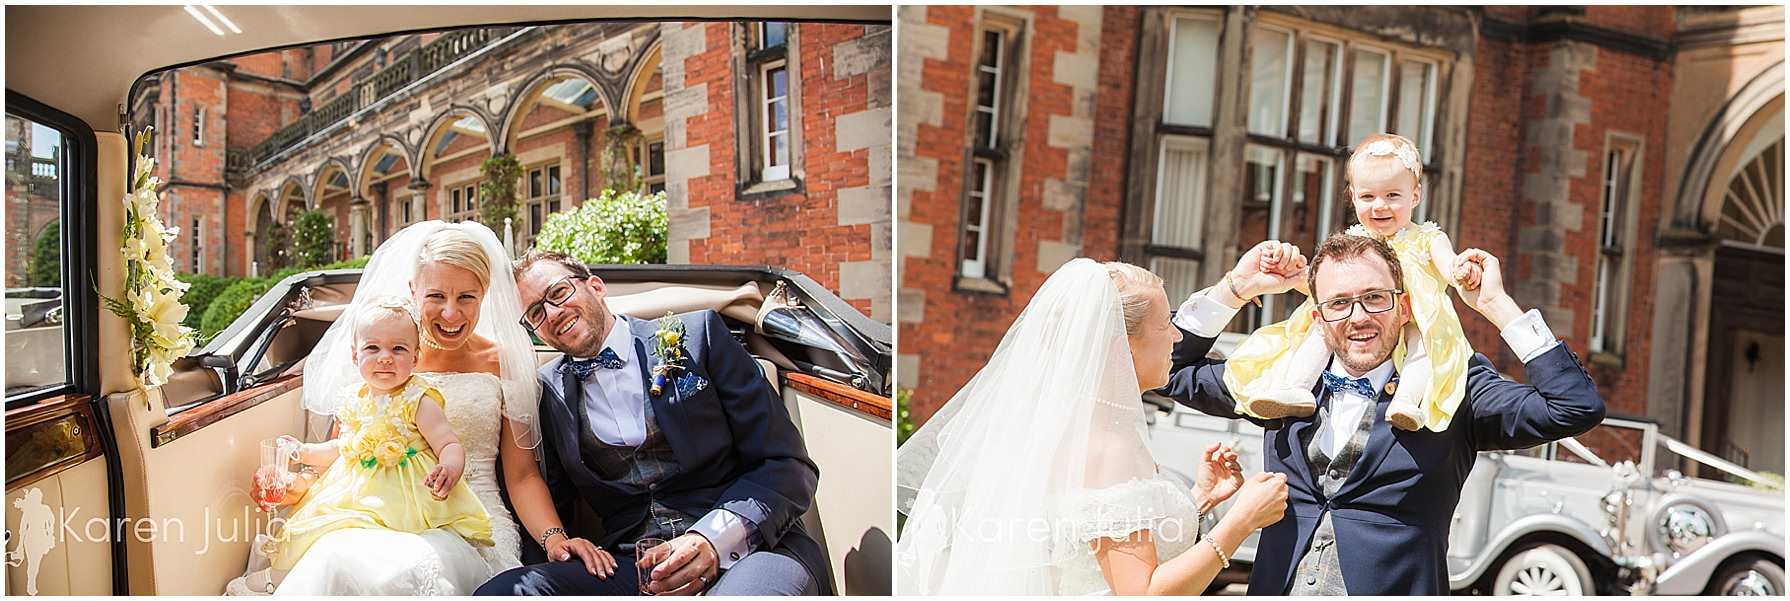 Capesthorne-Hall-Wedding-Photography-10